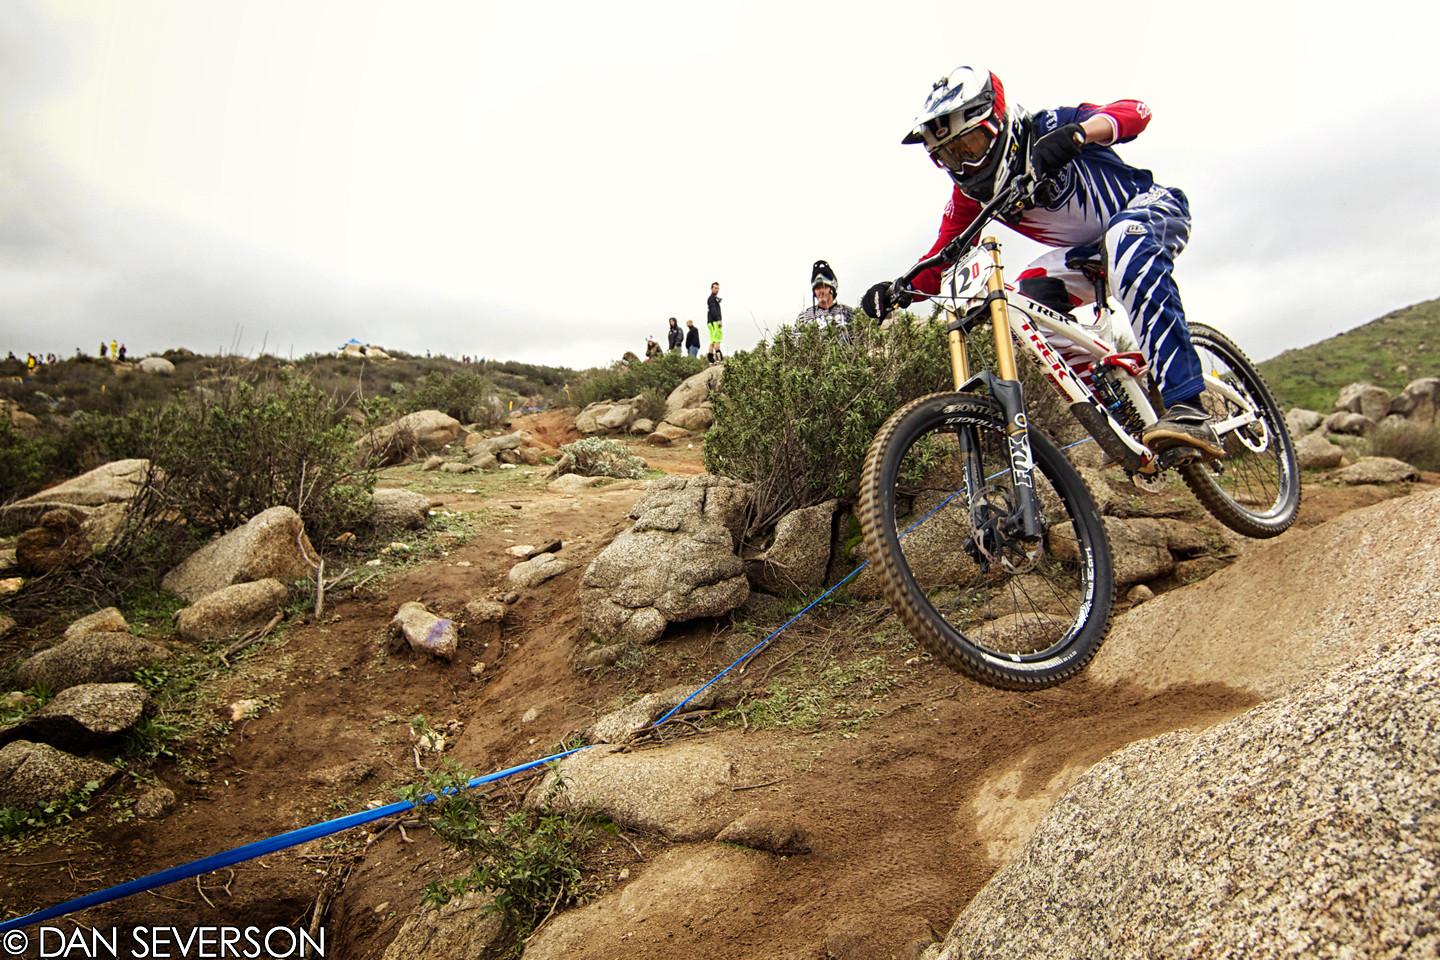 Charlie Harrison with Some Fontana Steeze - danseverson photo - Mountain Biking Pictures - Vital MTB